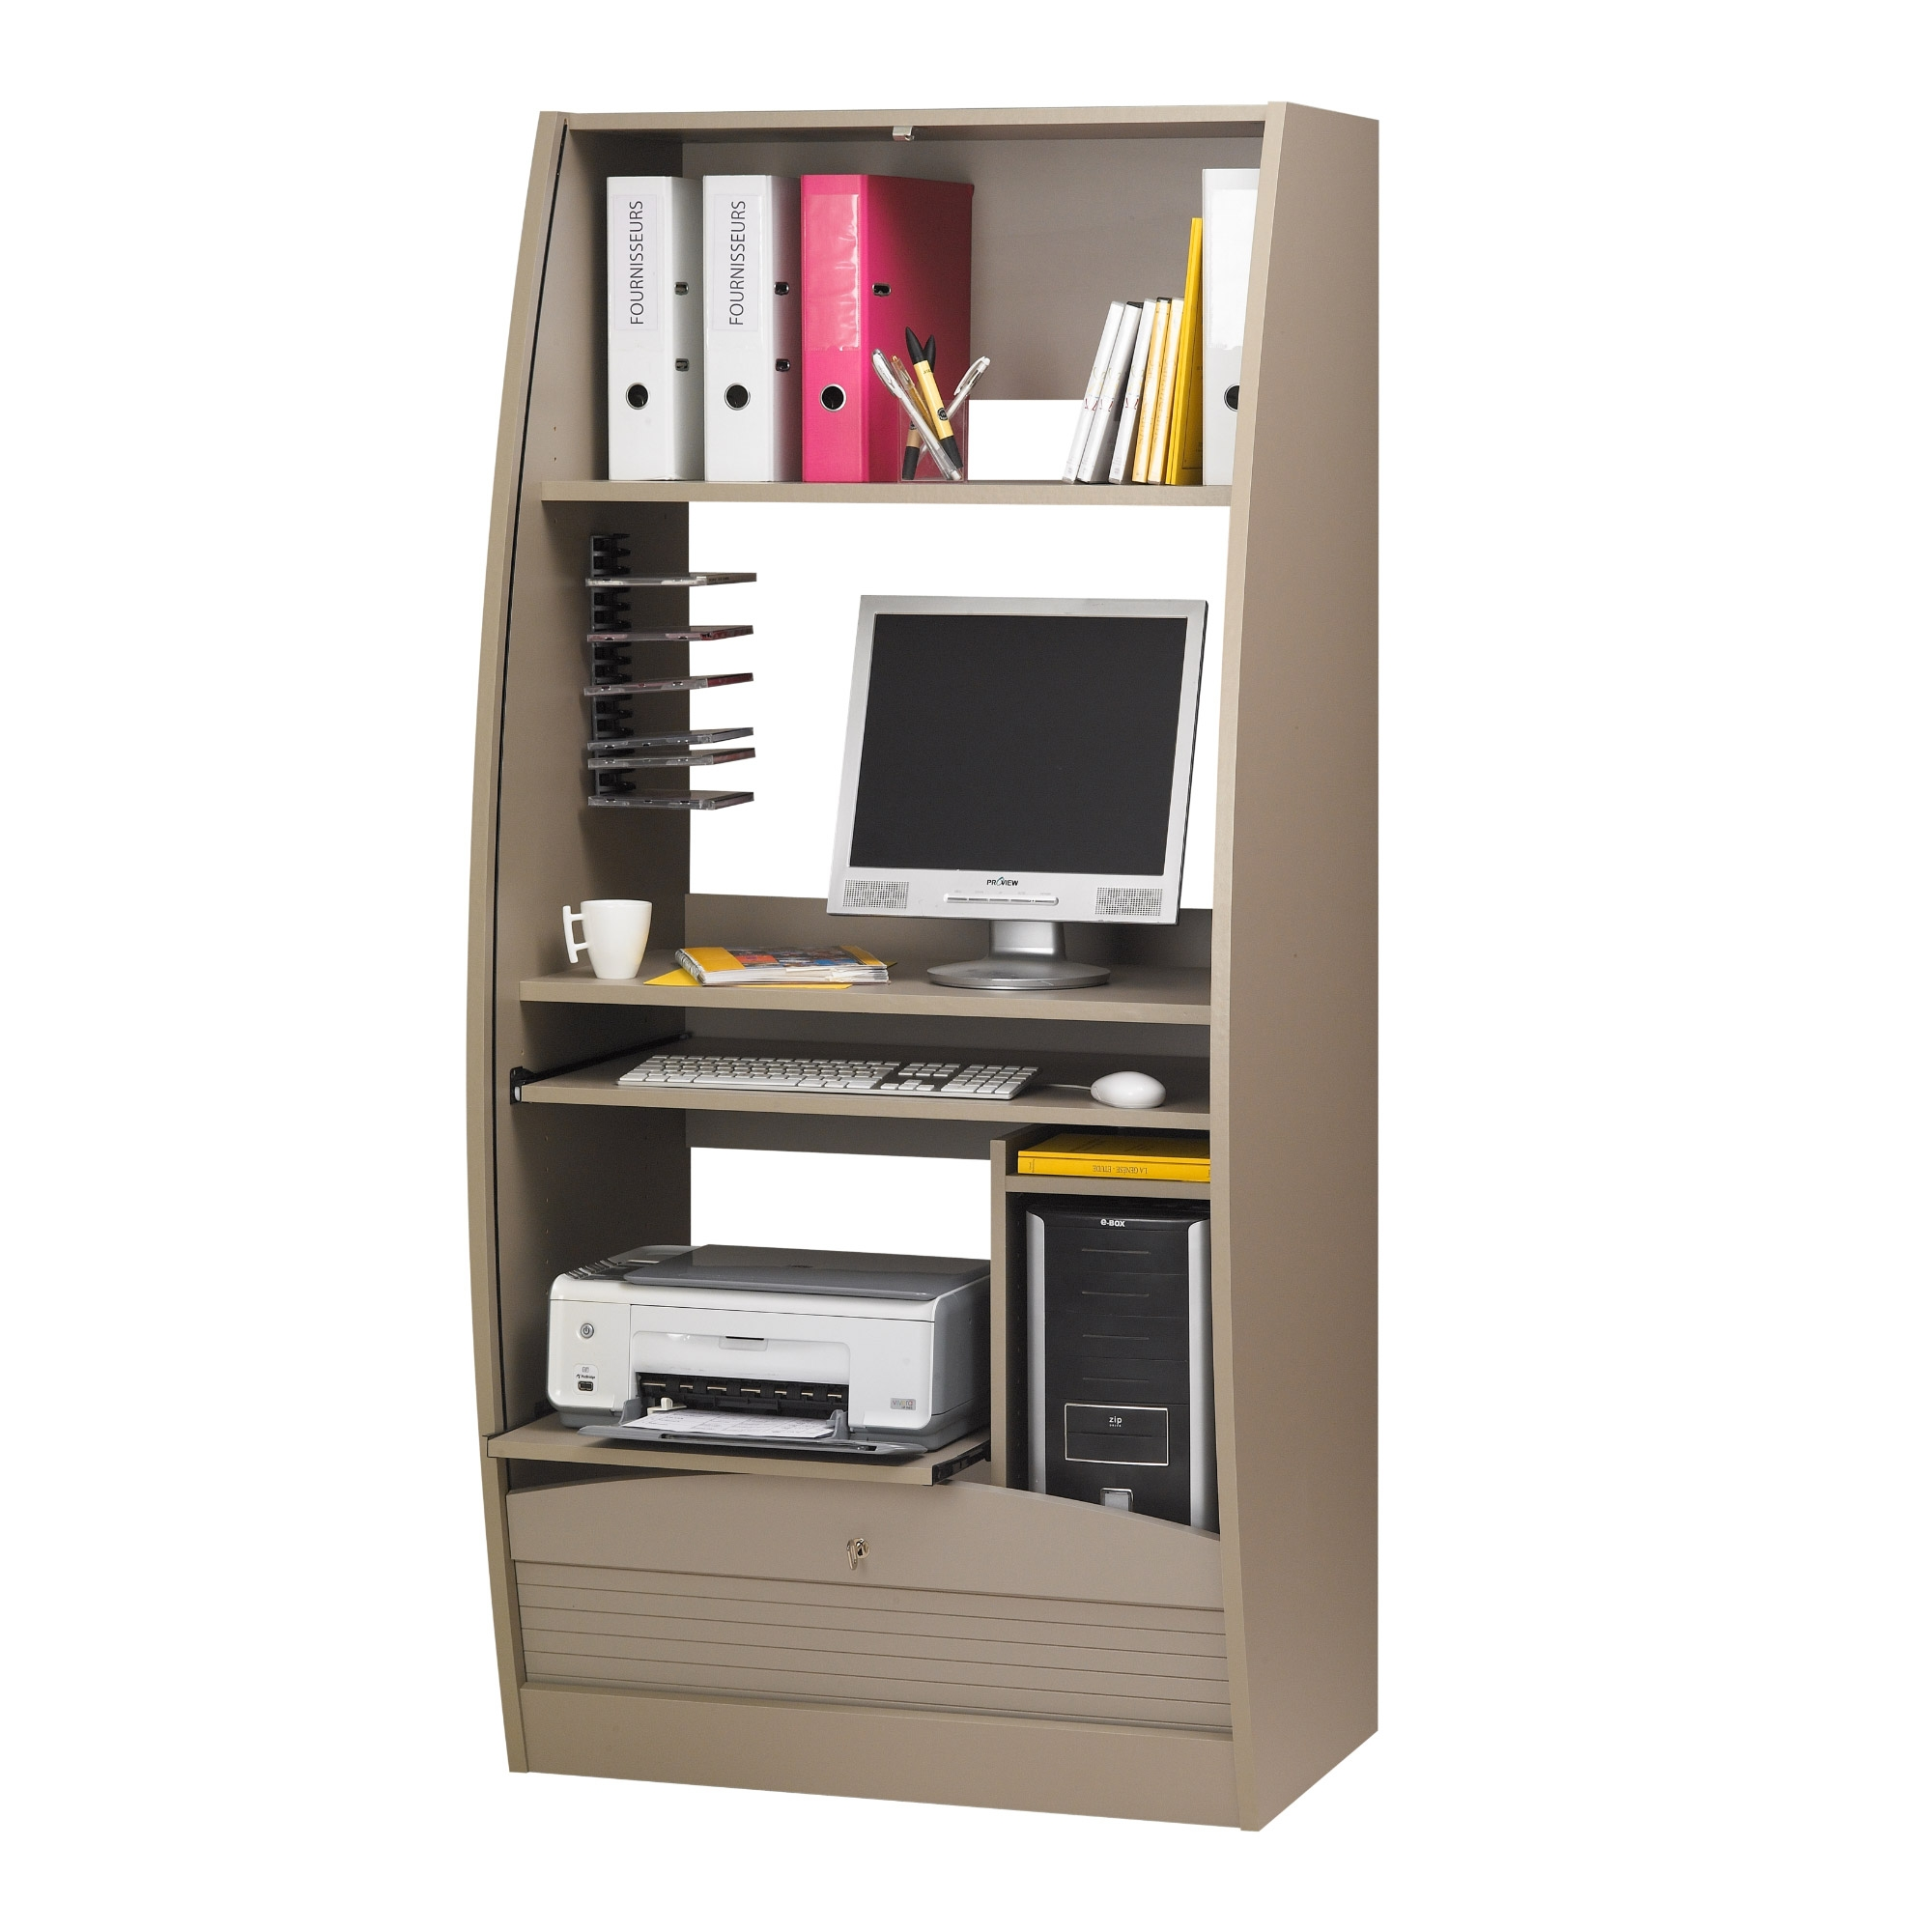 Meuble informatique ferme conceptions de maison for Meuble armoire informatique